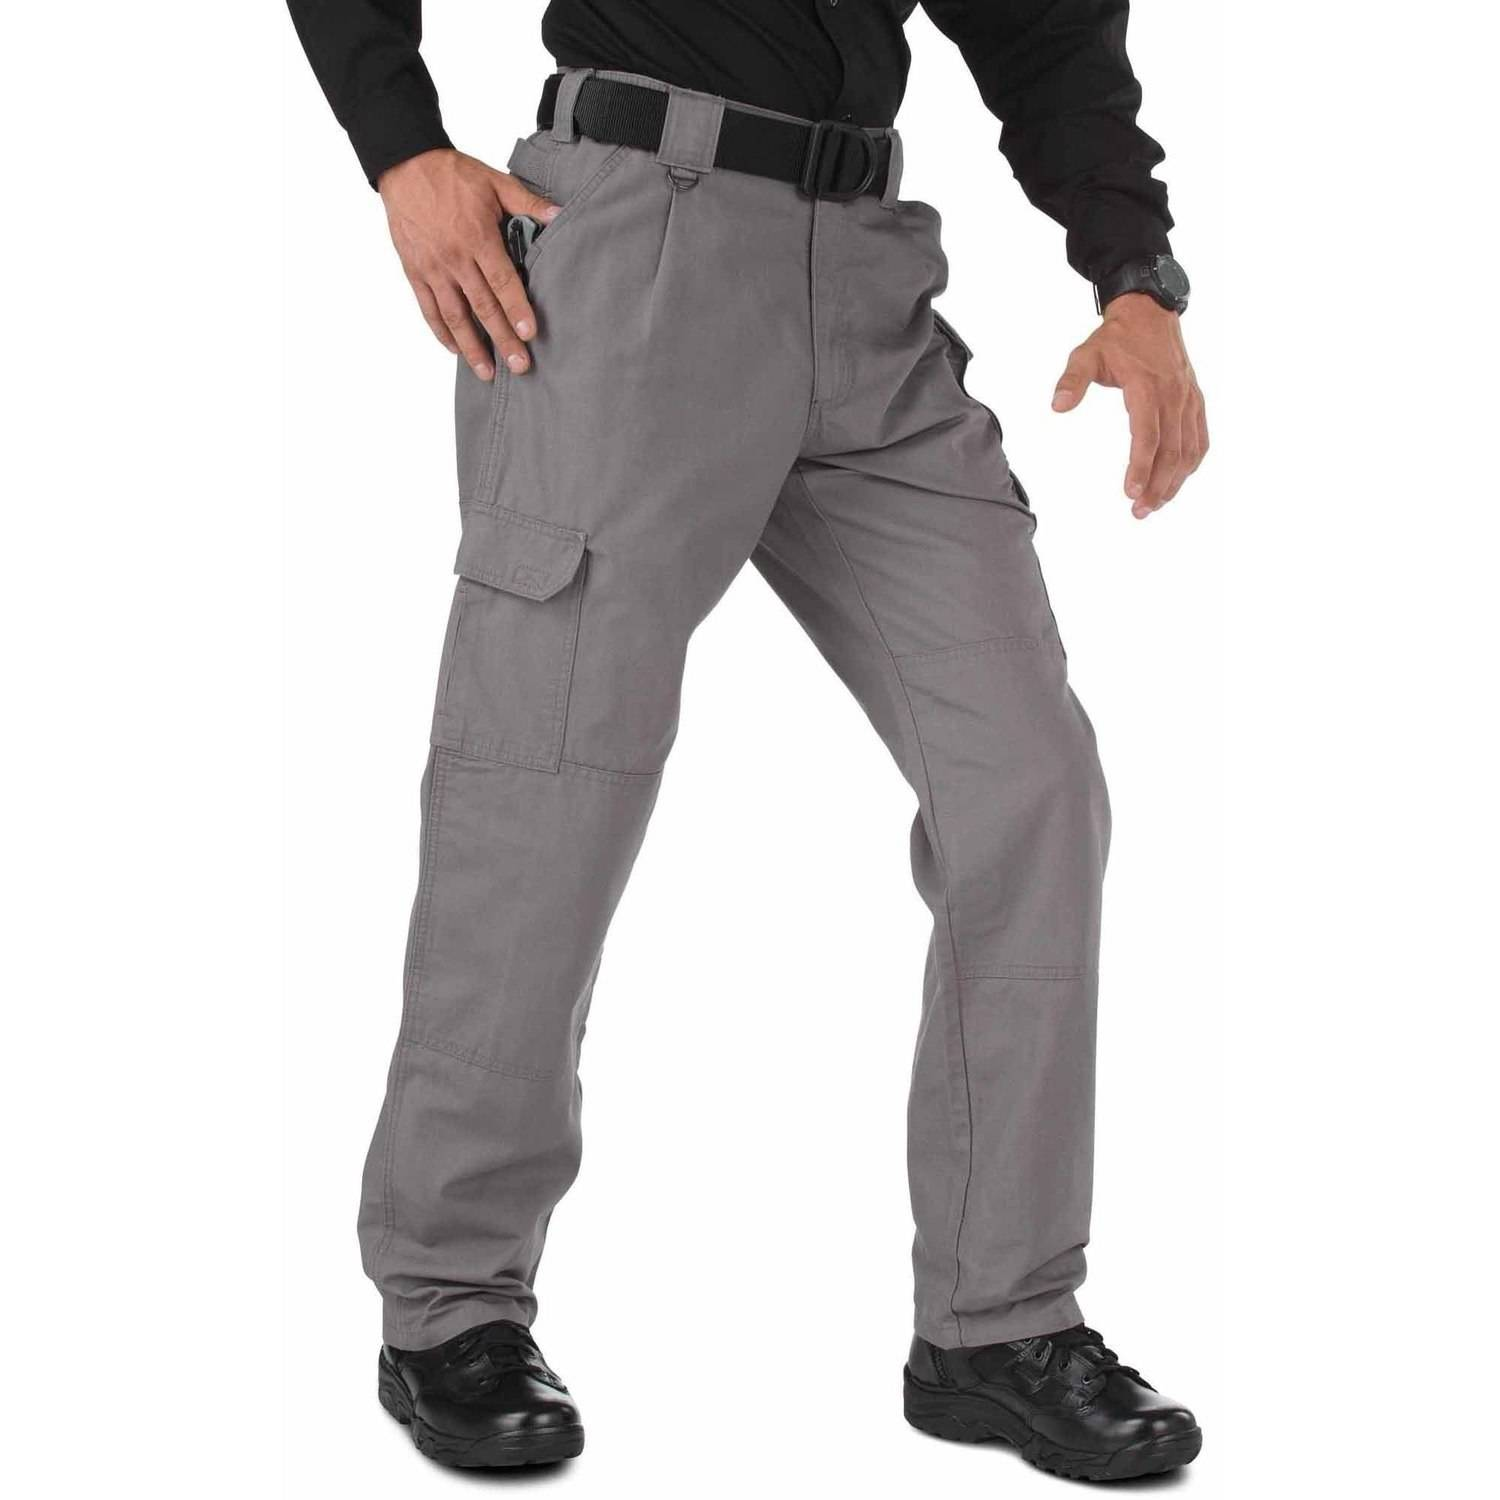 5.11 Tactical Men's Cotton Tactical Pant, Grey